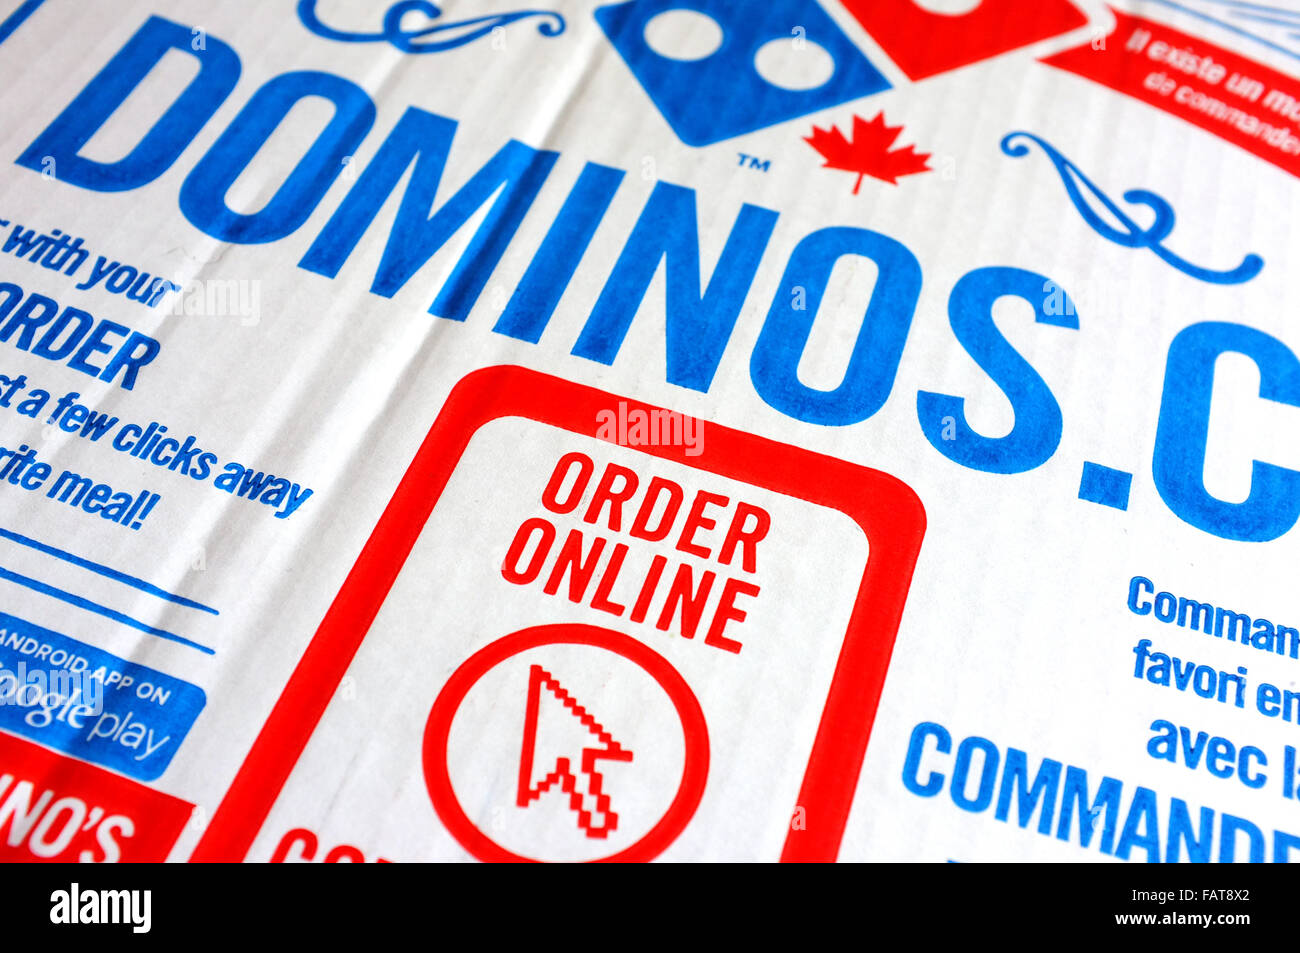 Dominos pizza online order - A Dominos Pizza Box With An Order Online Advert On It